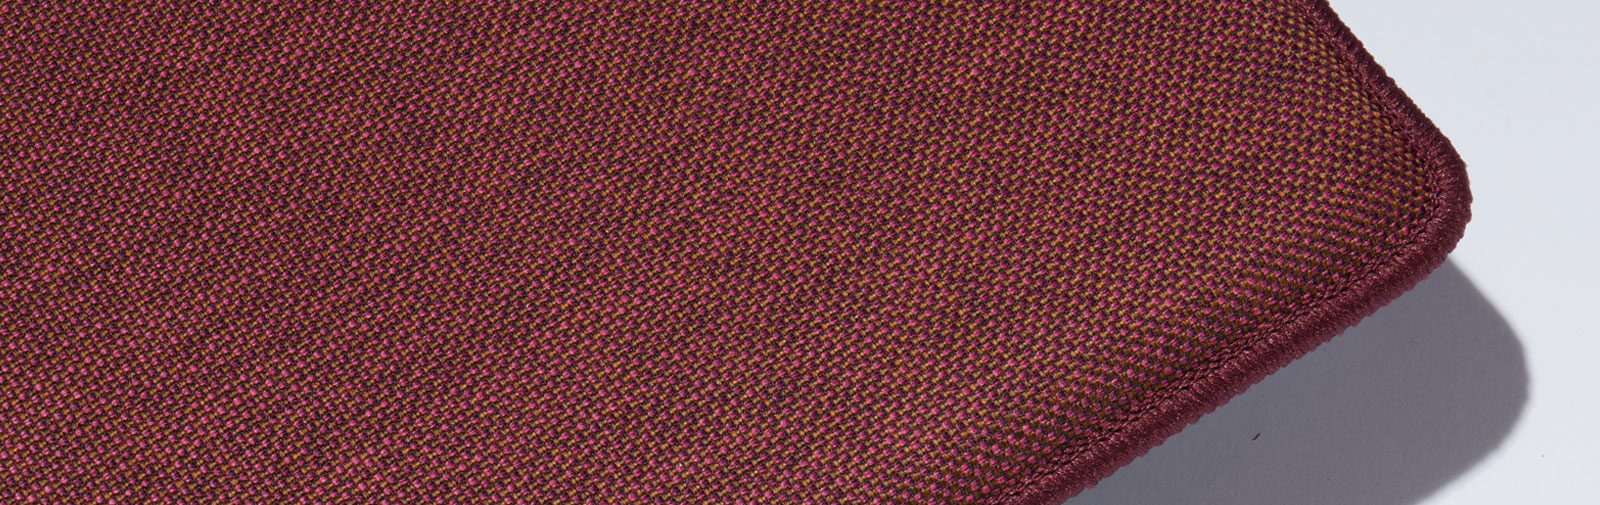 Pattern Cushion Pew Runner Bankauflage Verano Color code 662 Color purple